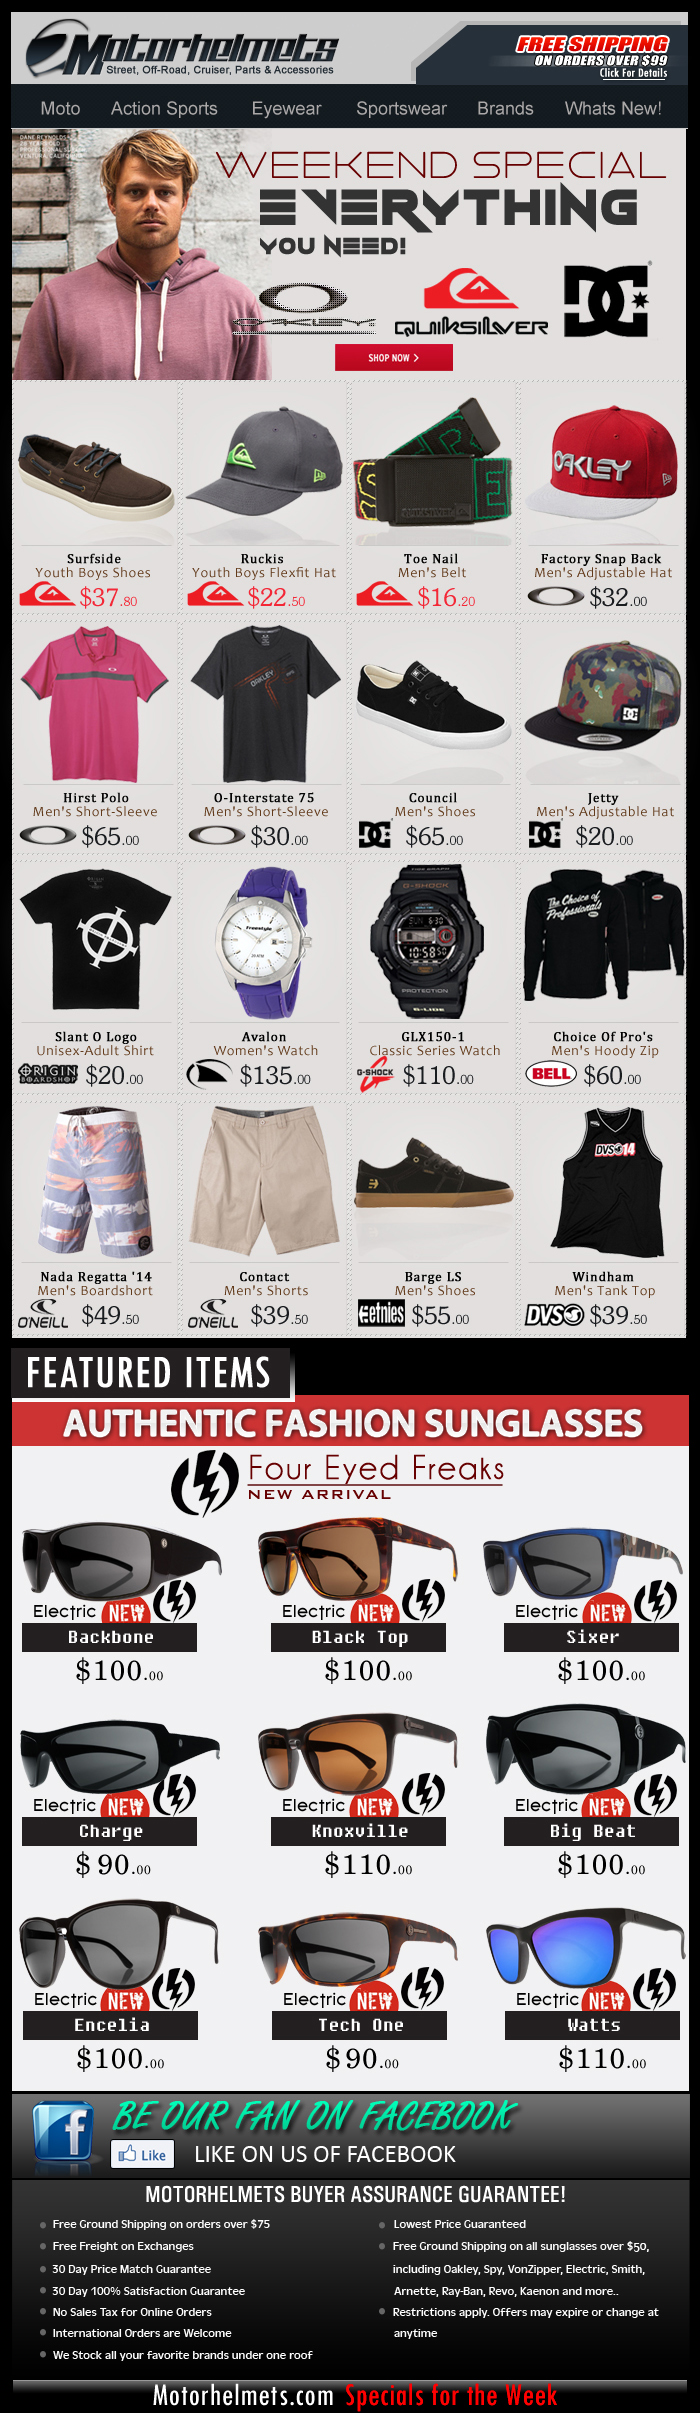 Sportswear New Arrivals from Oakley, DC, Quiksilver, O'Neill and more!